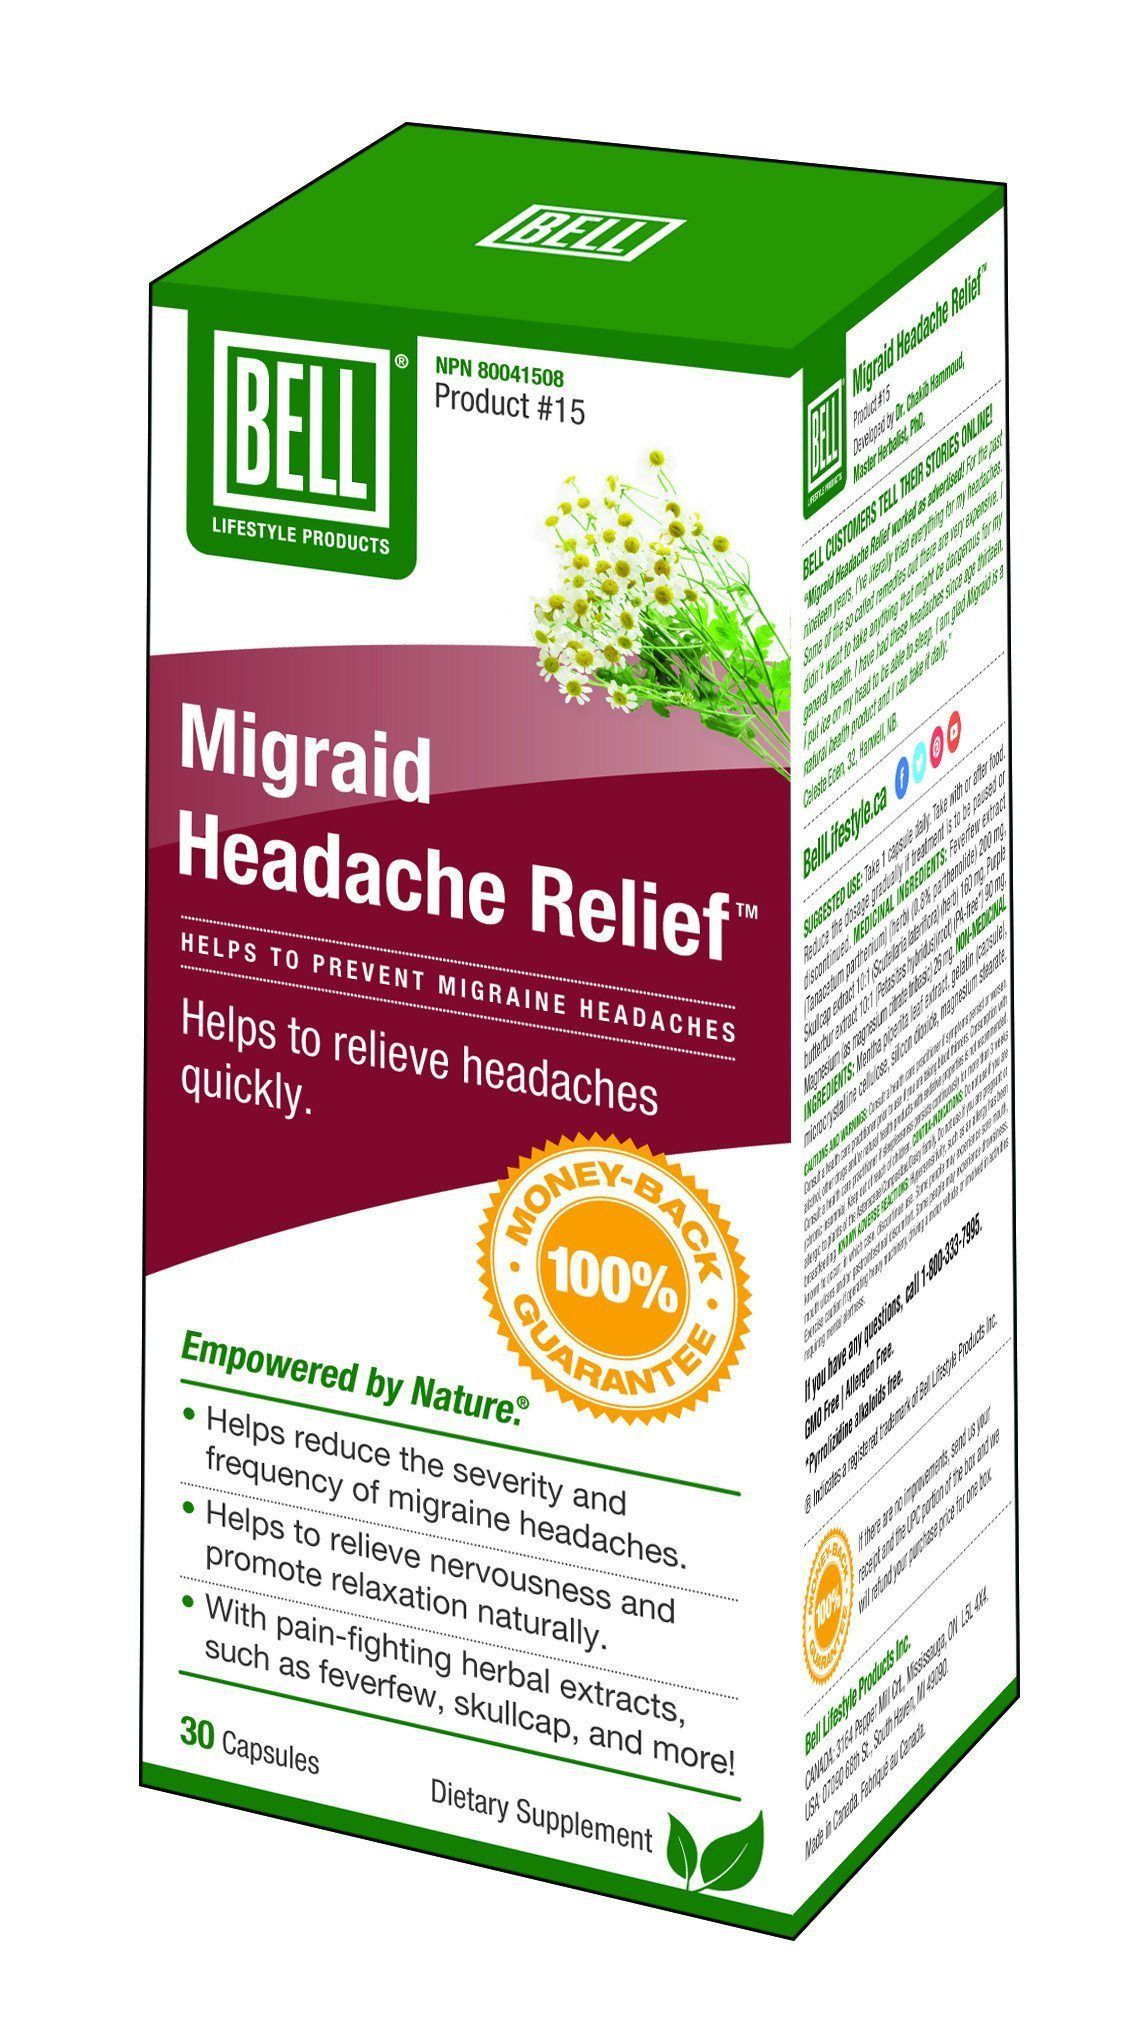 Supplements & Vitamins - Bell - Migraid Headache Relief, 30 Caps